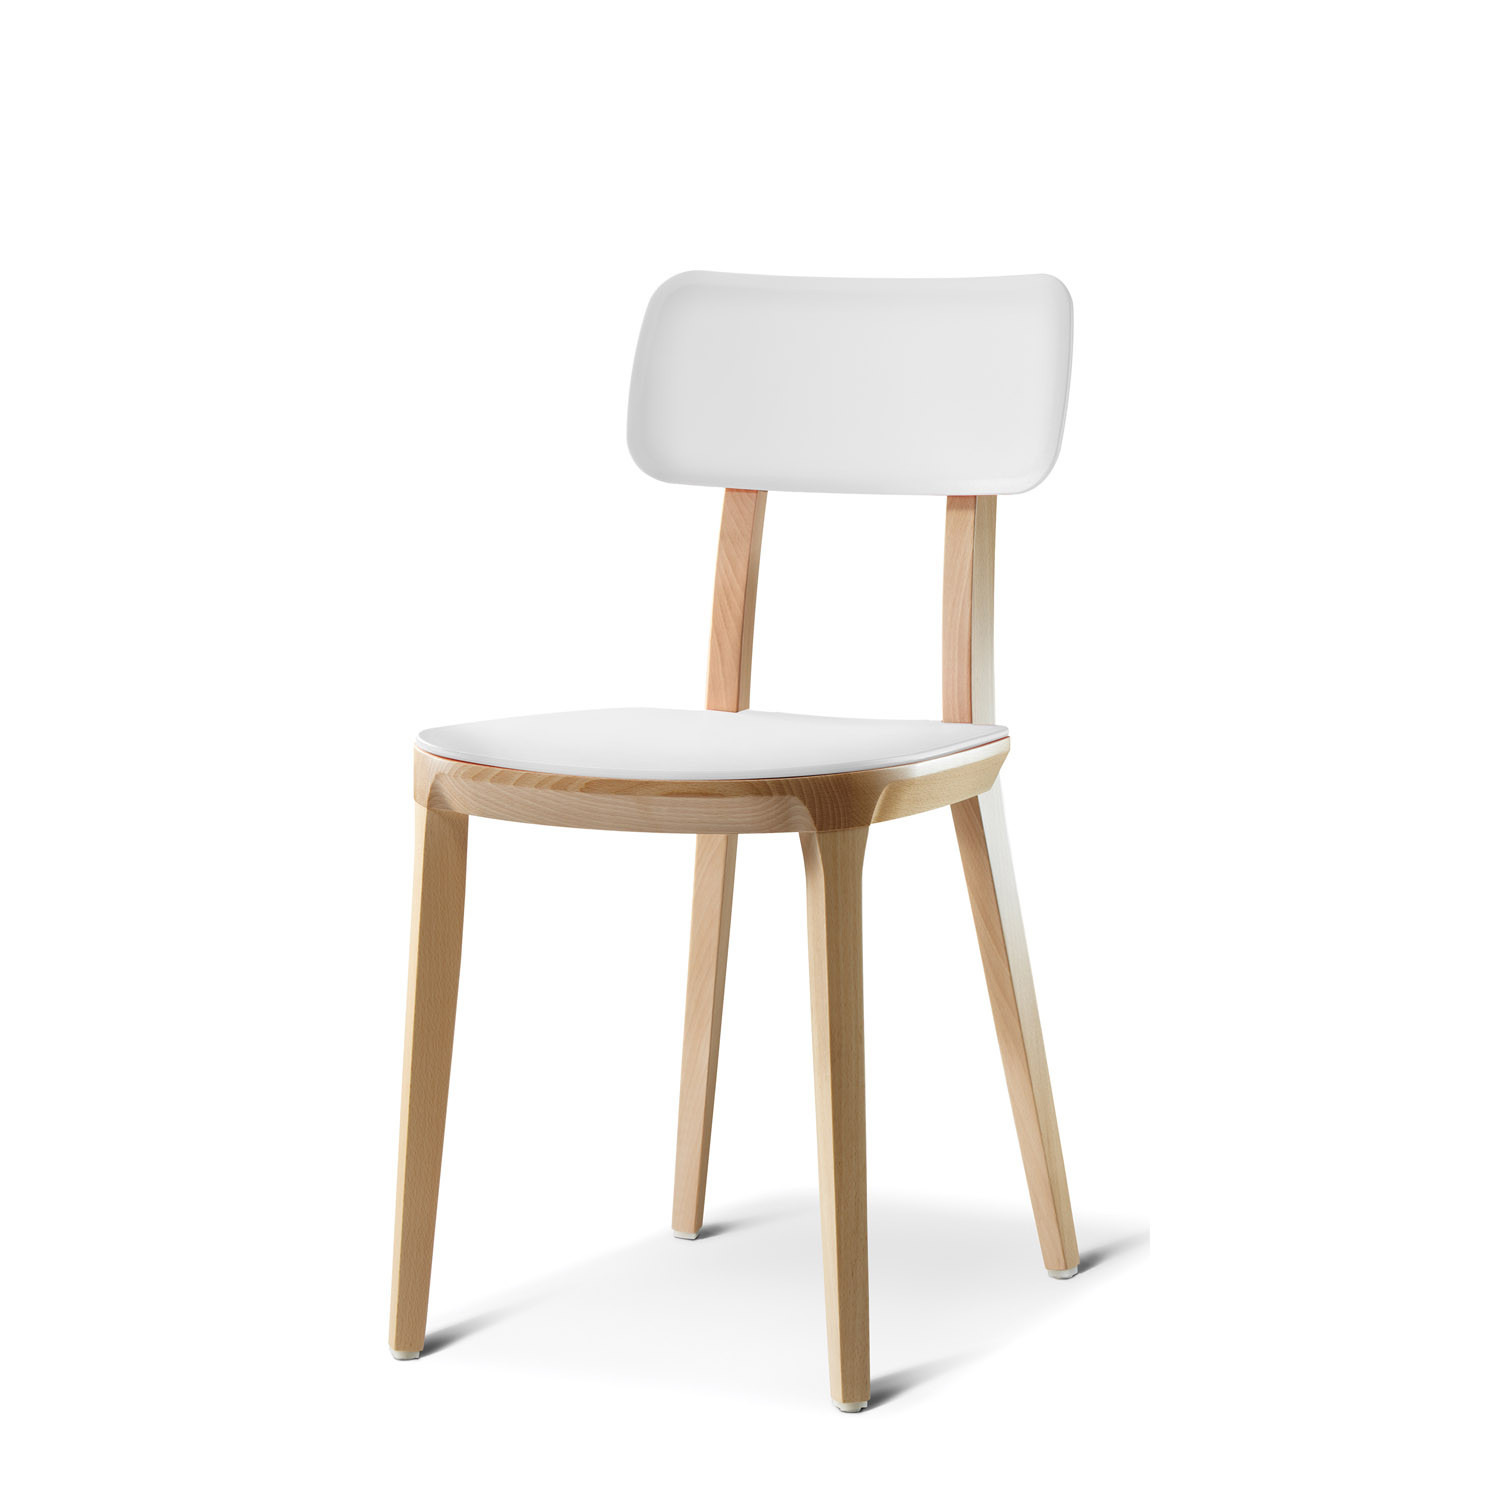 cafe chairs wooden kids barber chair retro breakout mrt1 solid wood apres